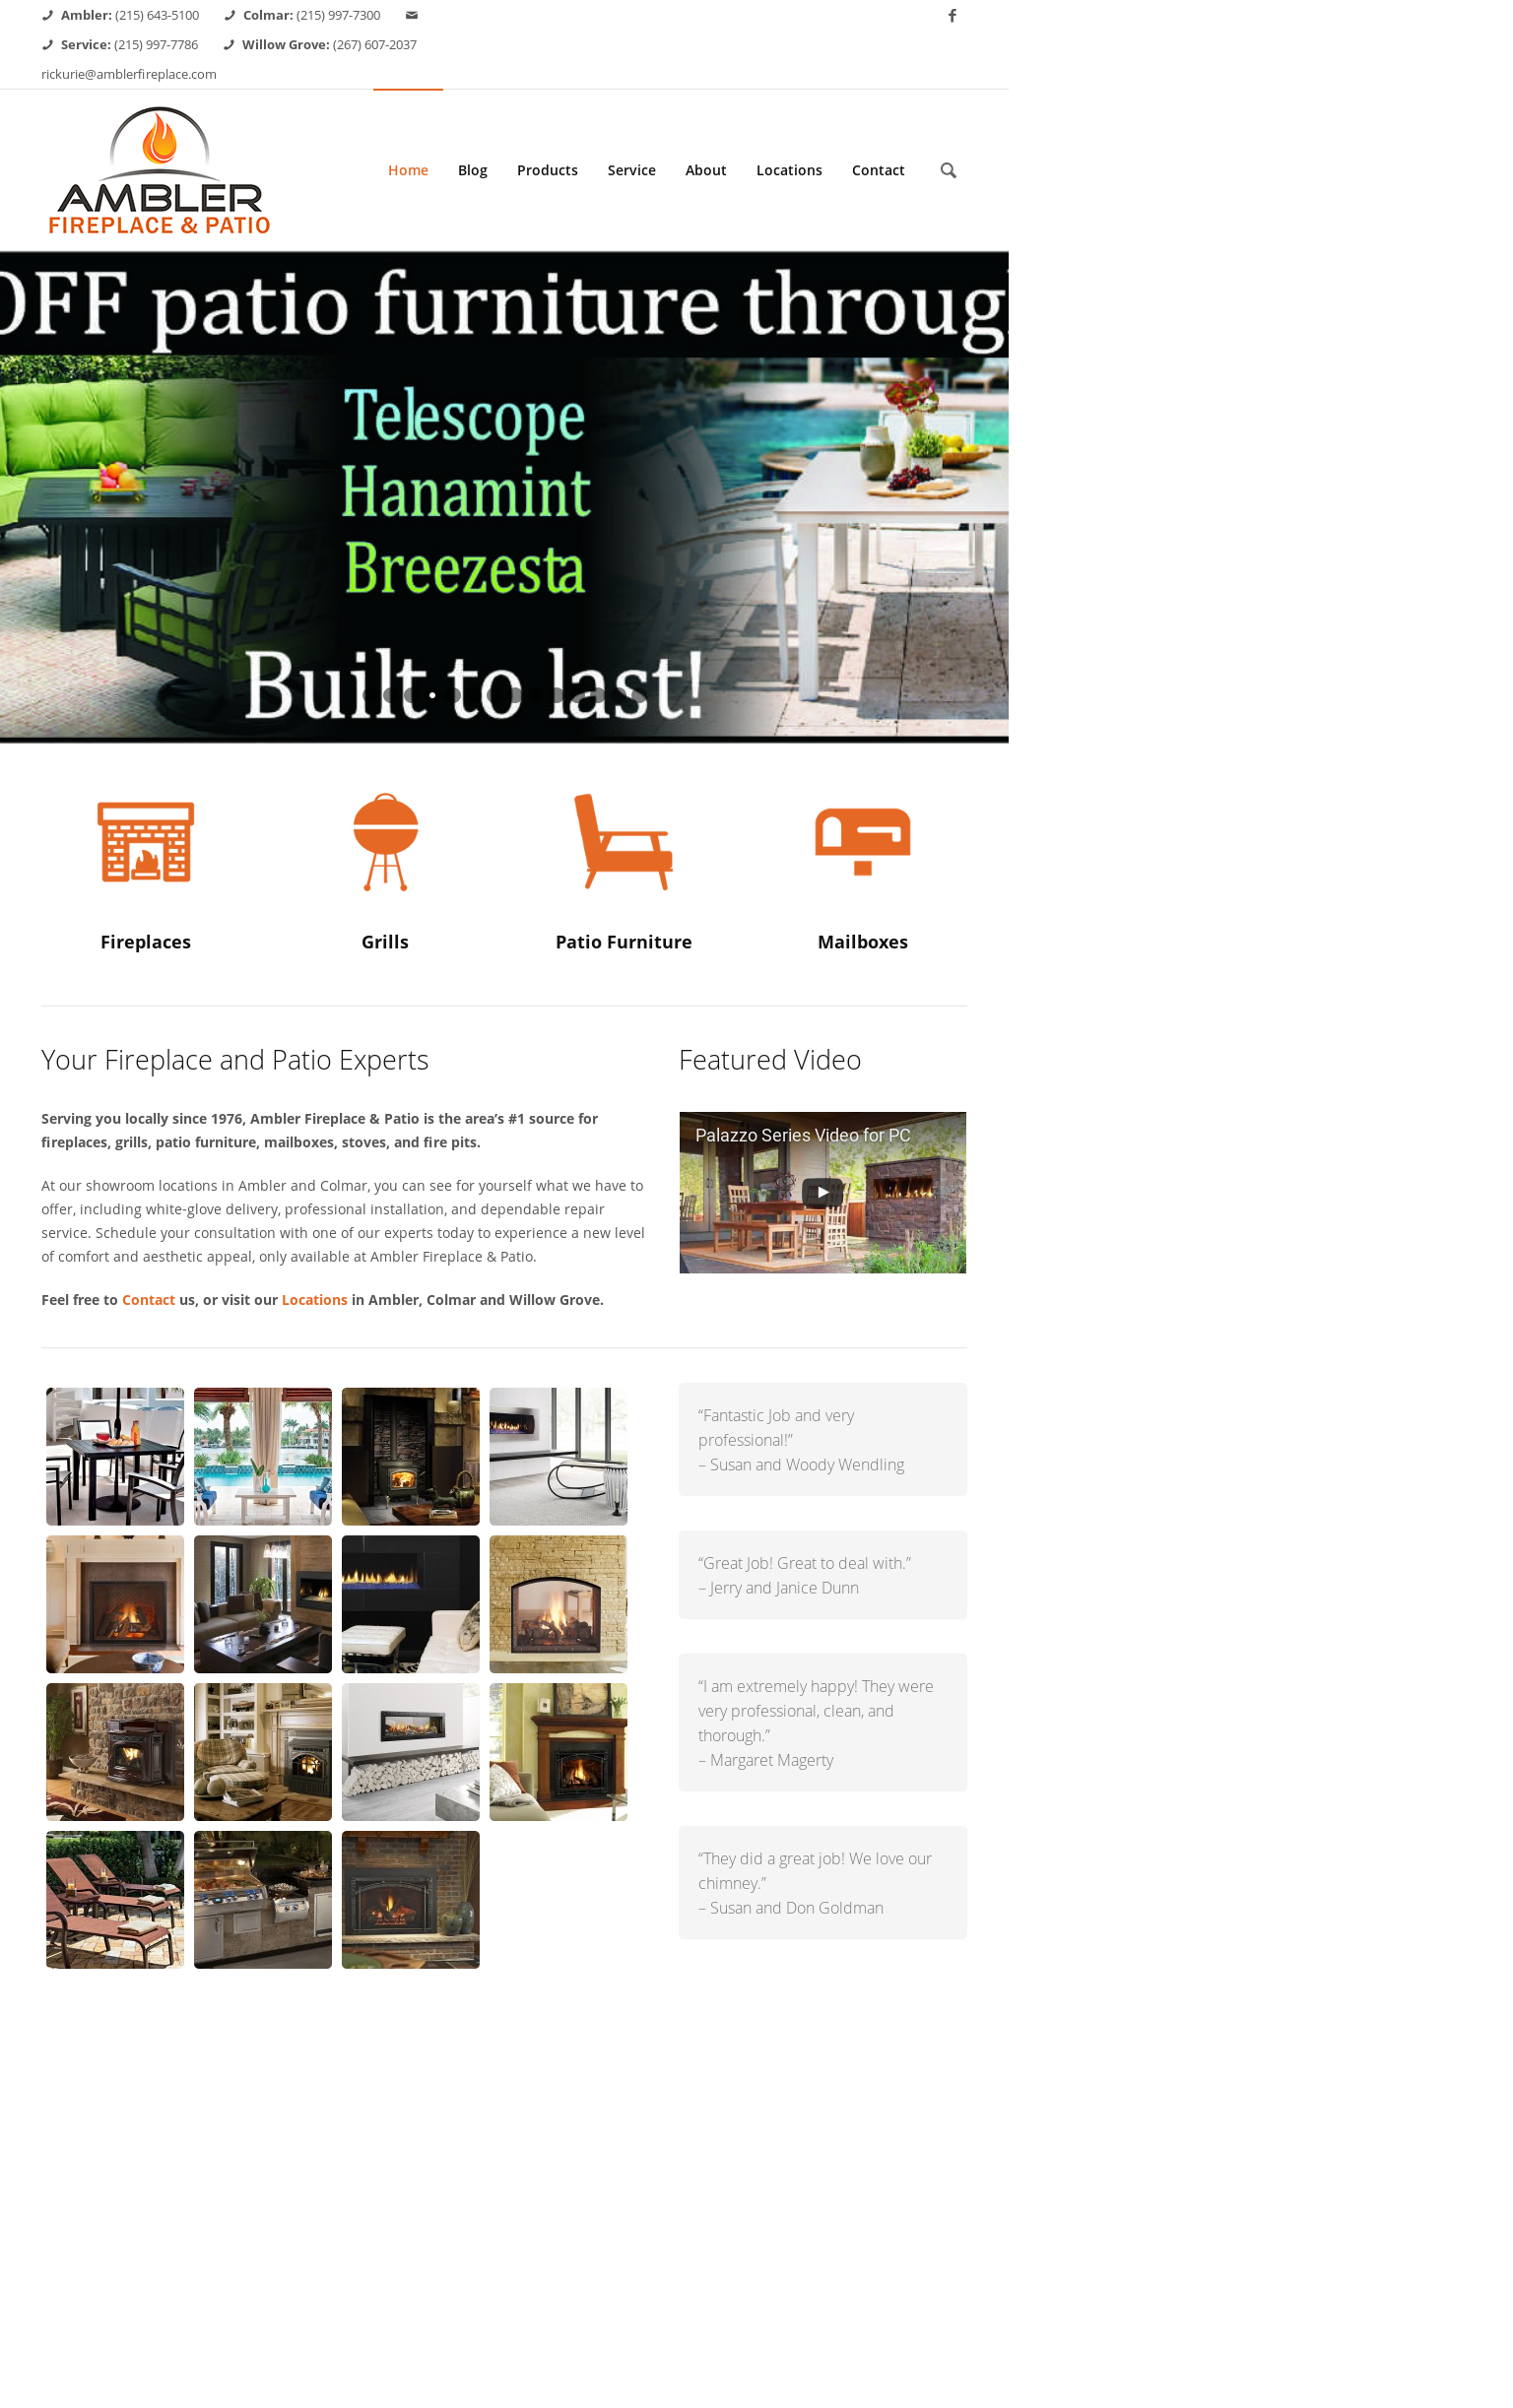 Charmant Ambler Fireplace And Patio Website History